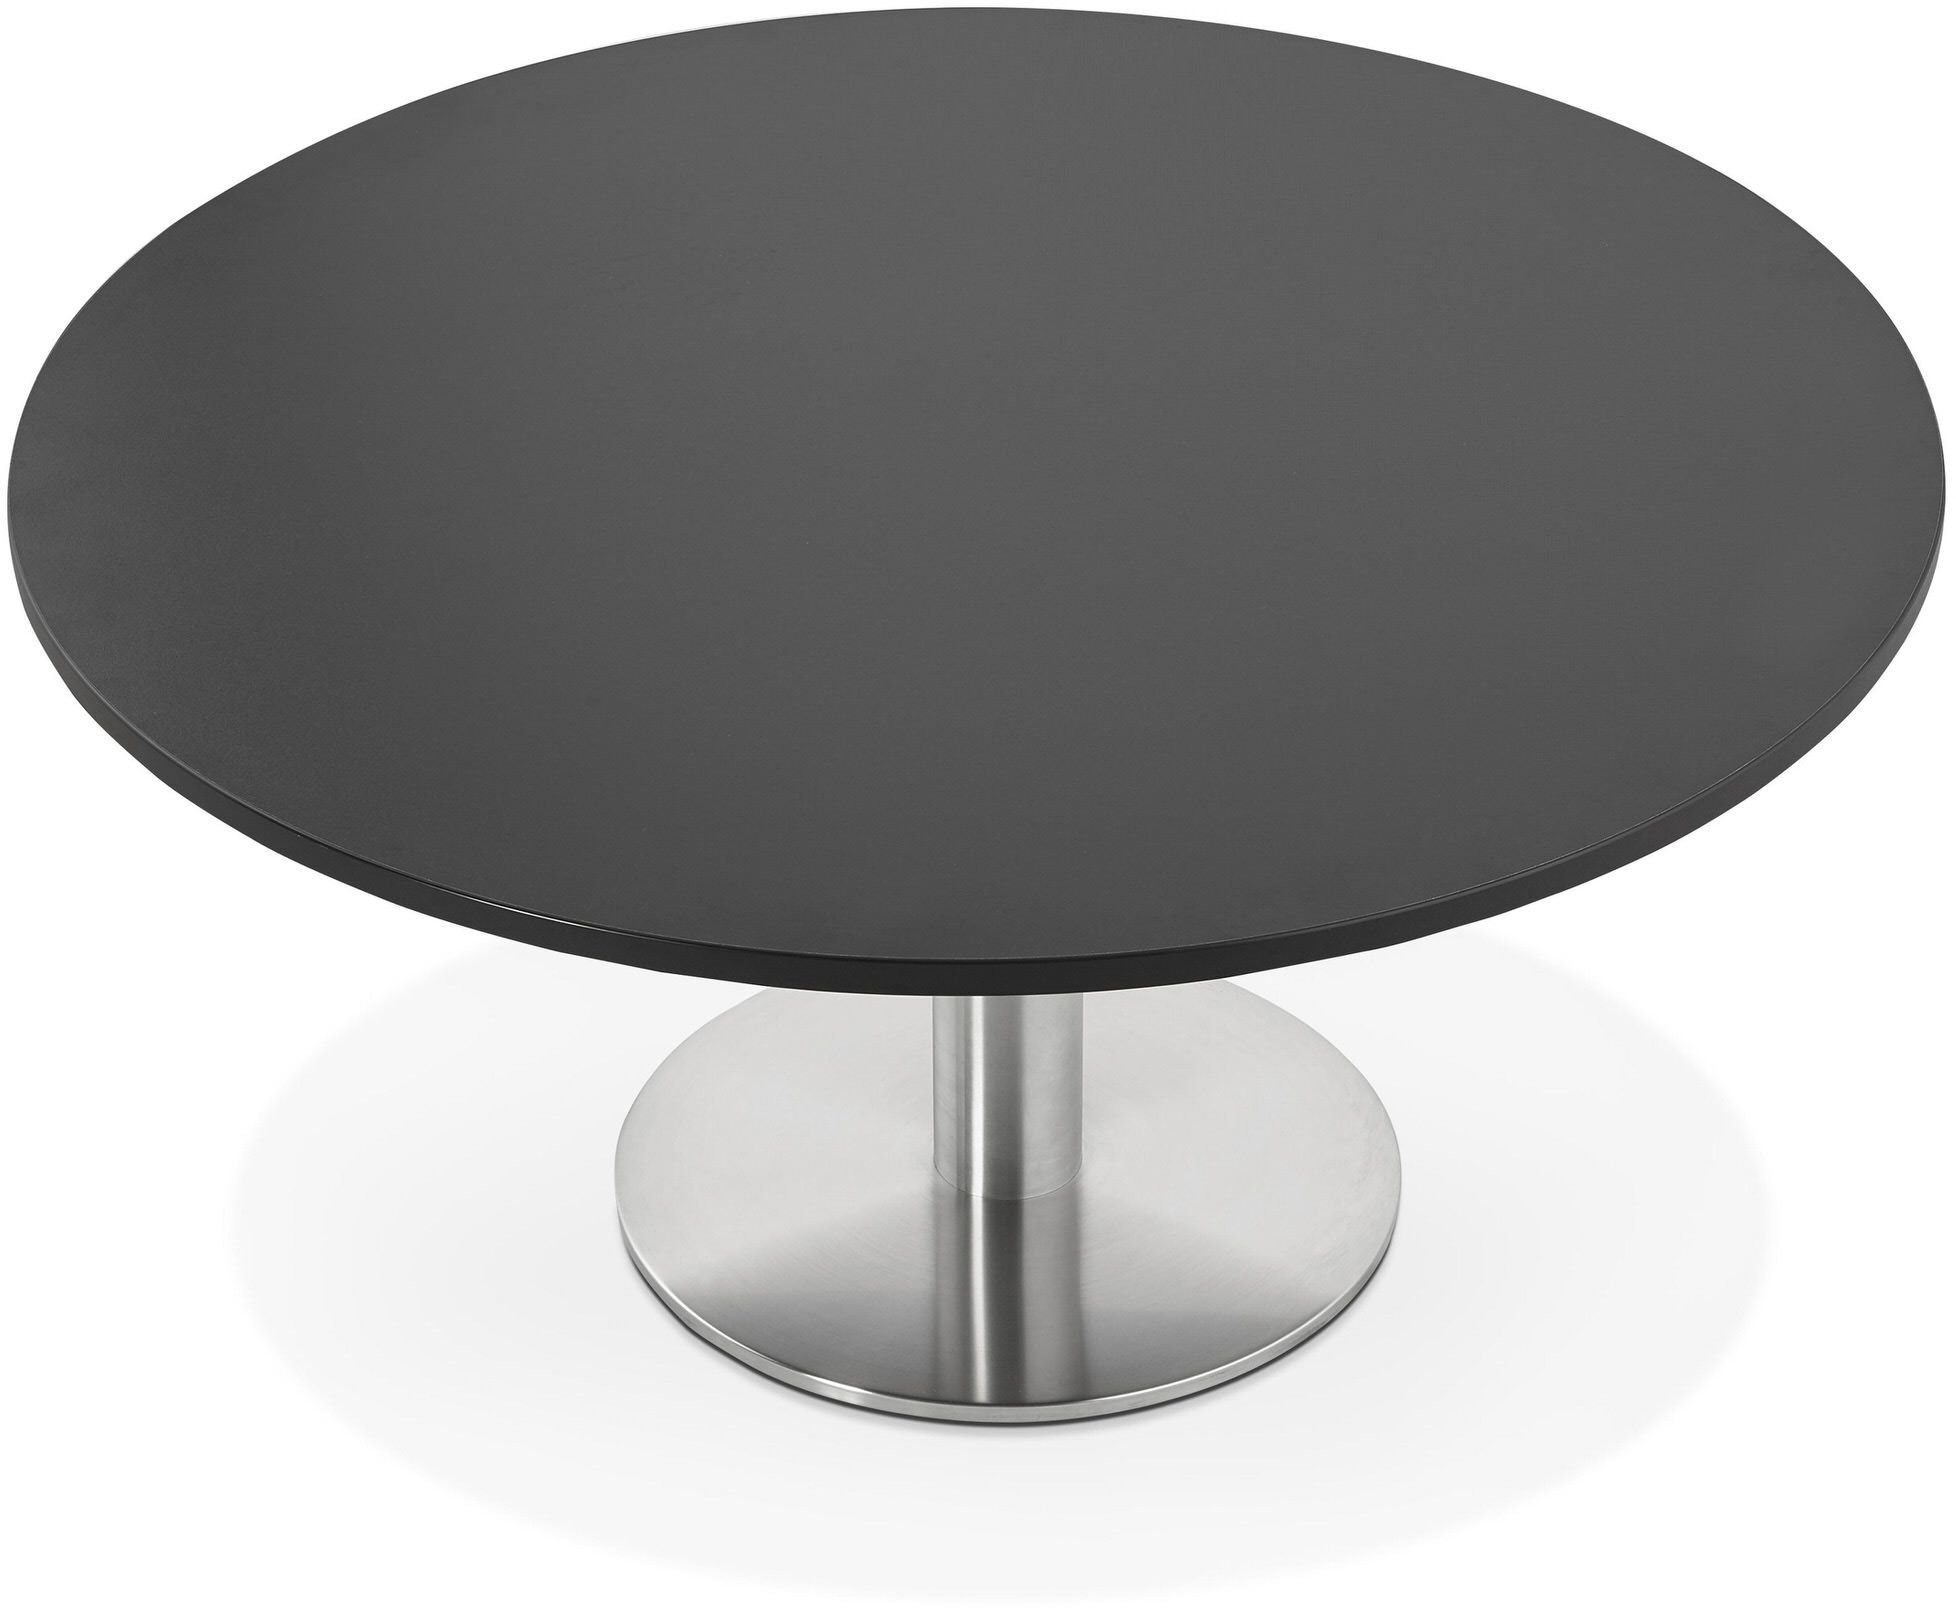 Table Basse Design Noire Table Basse Design Marco Kokoon Design Noir